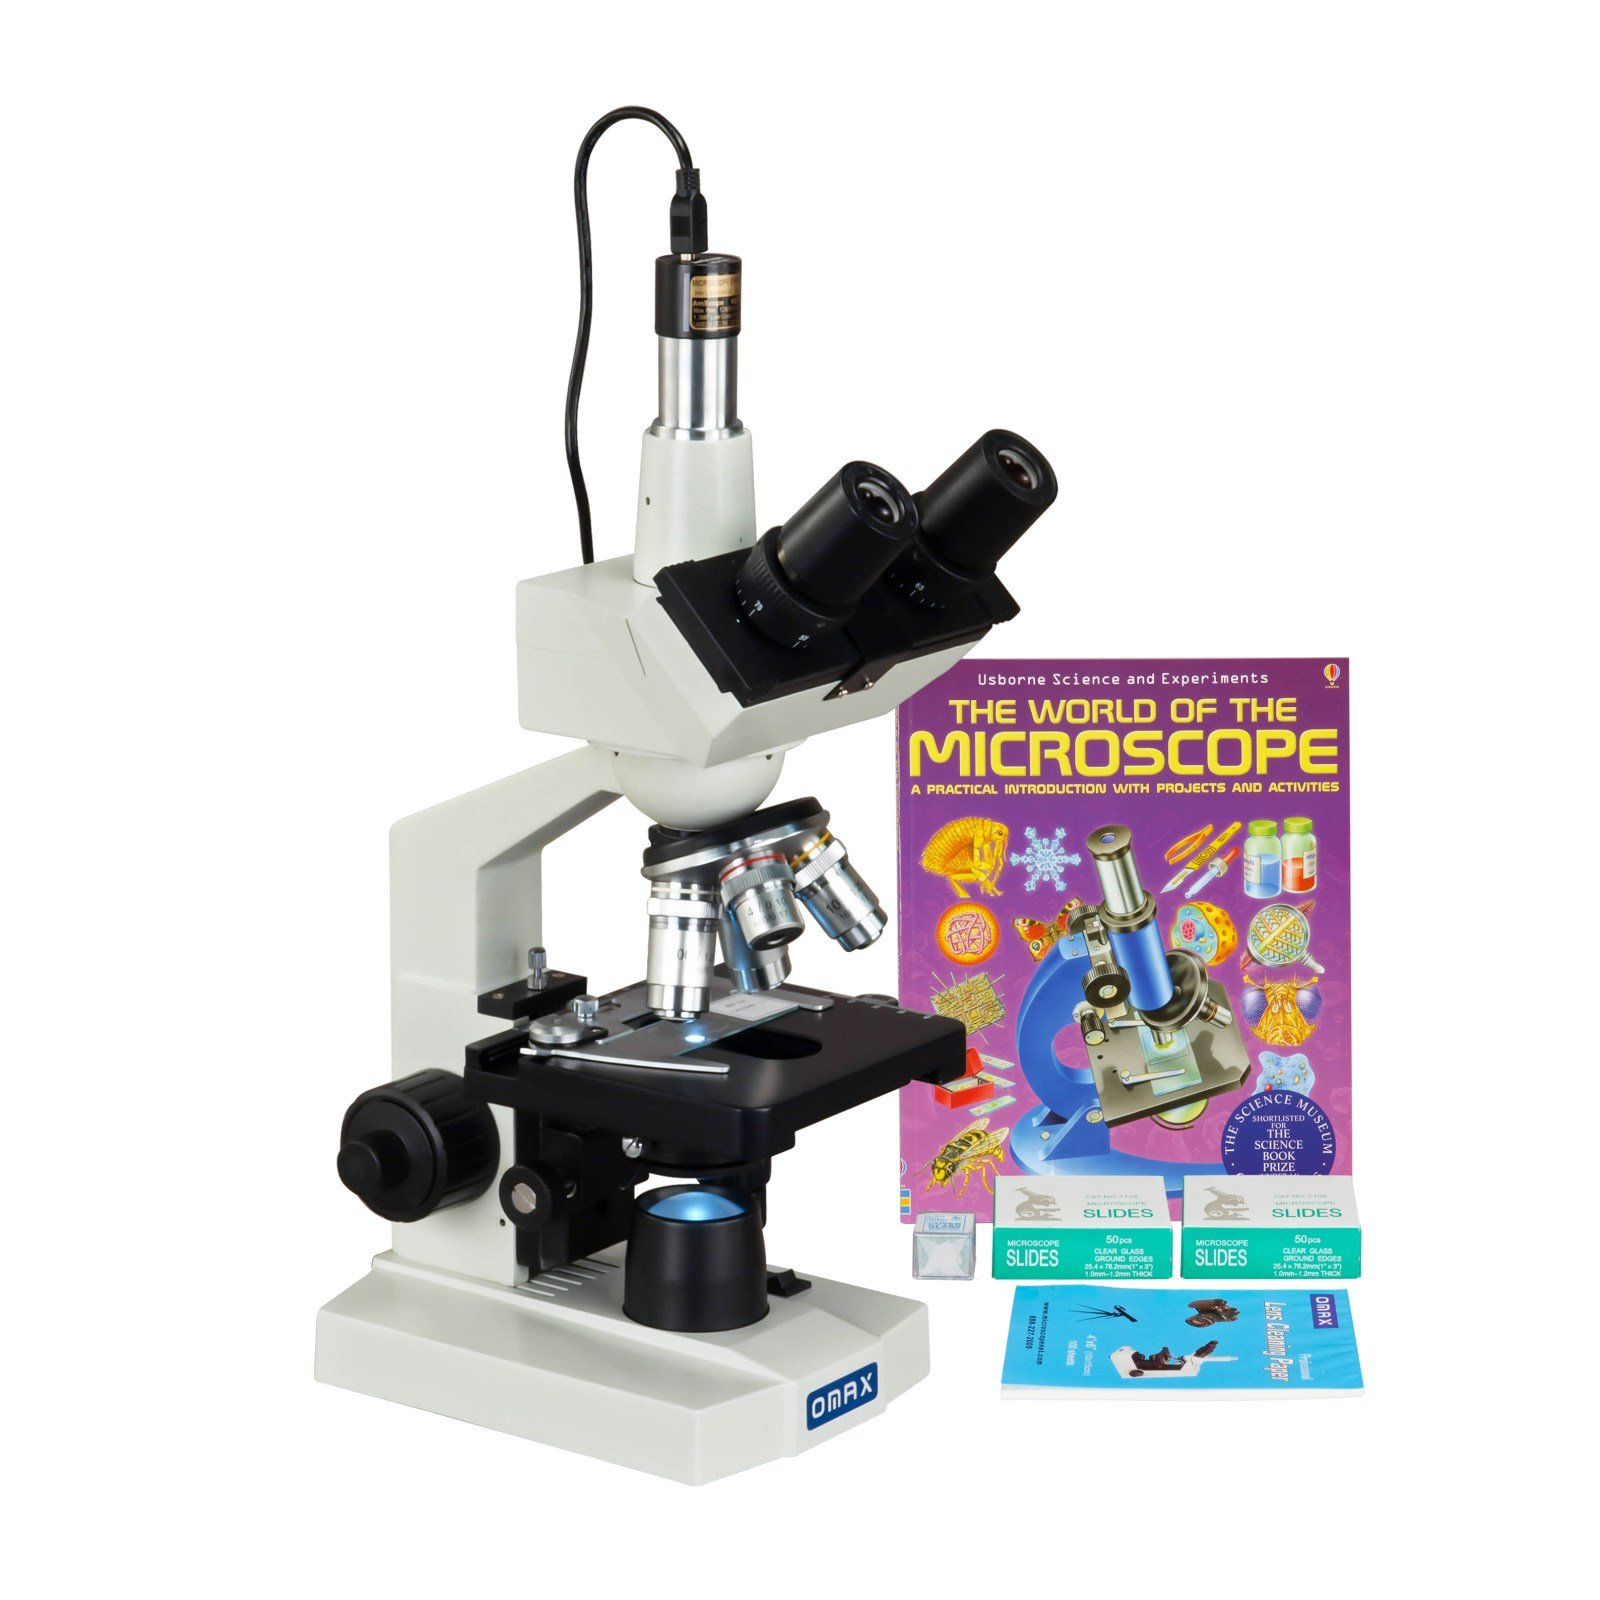 OMAX 40-2500X LED Digital Trinocular Lab Microscope + 5MP Camera + Blank Slides + Covers + Lens Paper + Book by OMAX